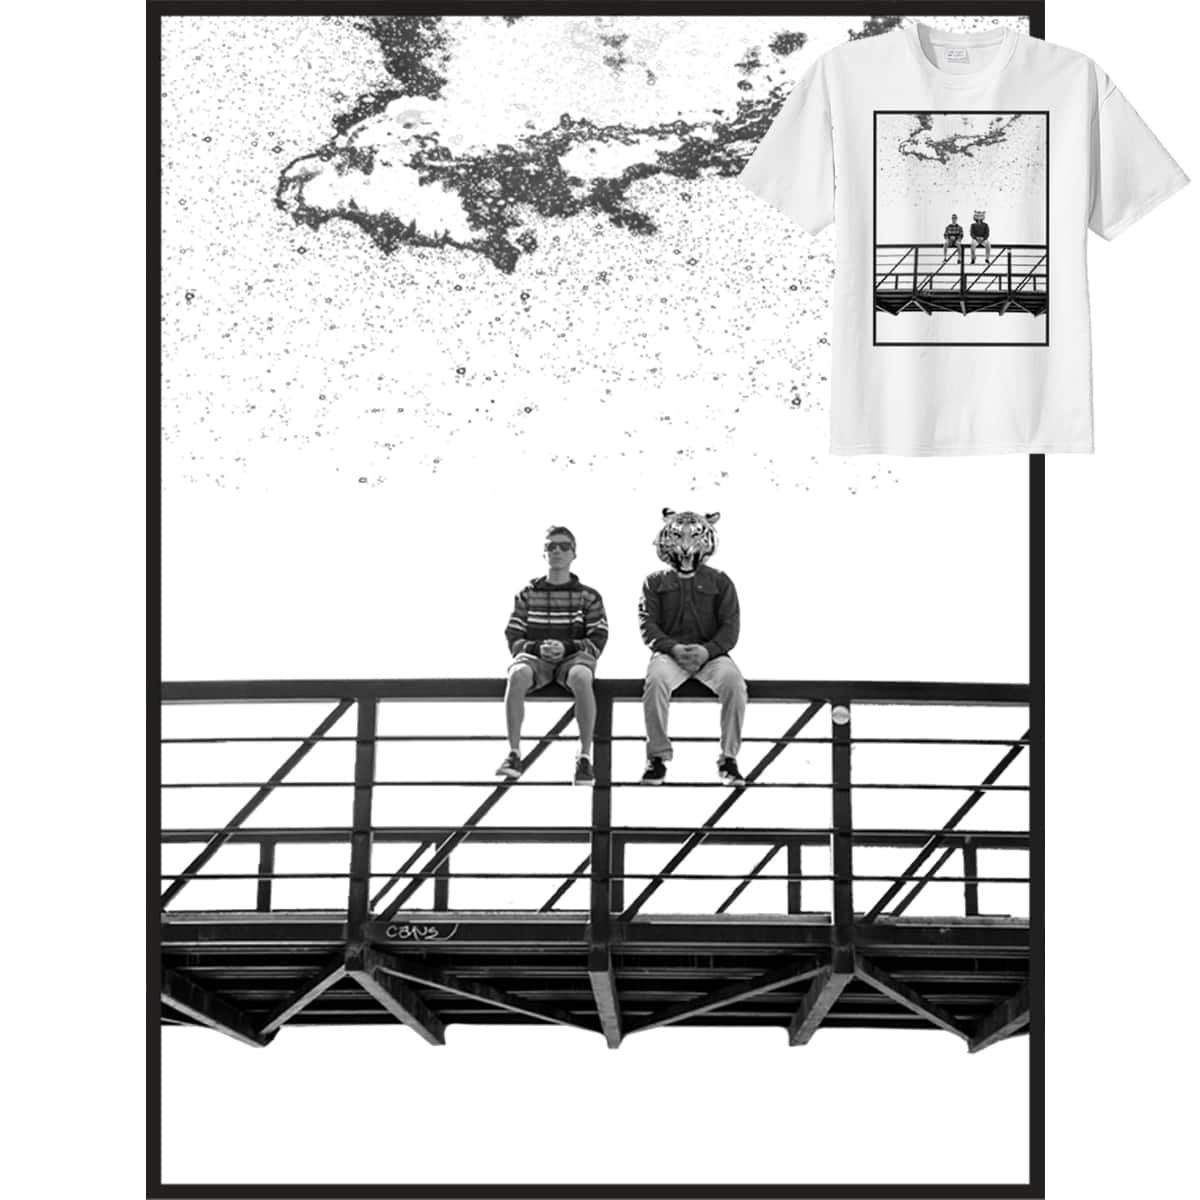 Watching and Wishing by casey.andringa and jesse.andringa on Threadless